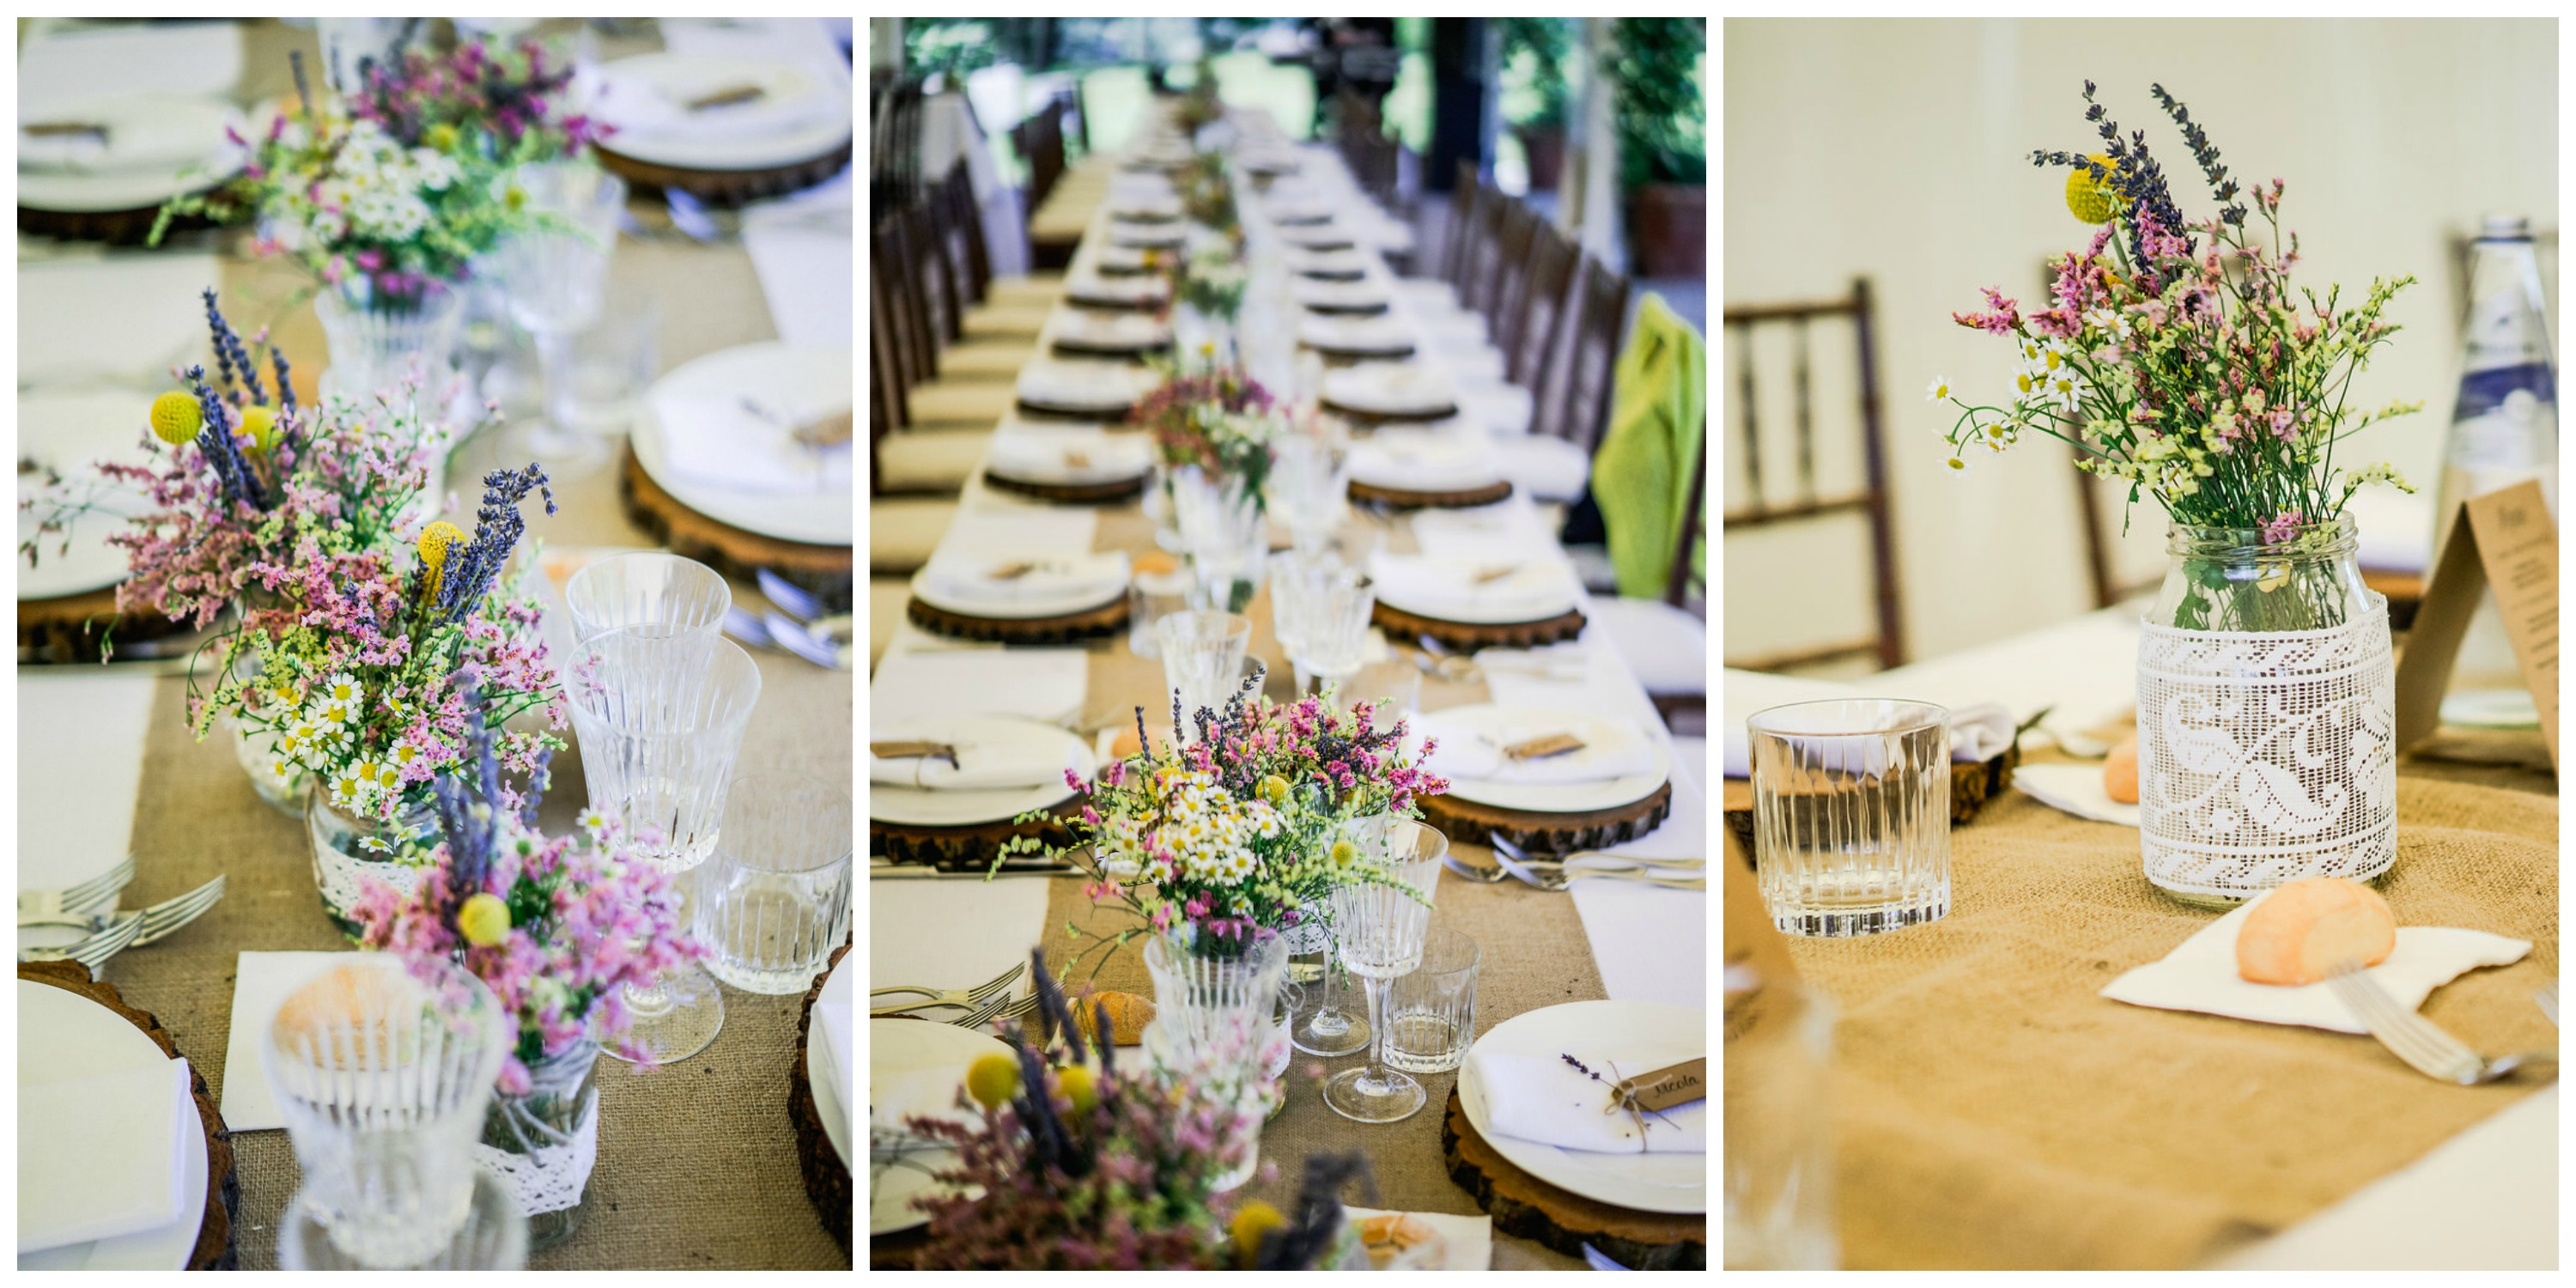 23-country-wedding-table-set-weddinglam